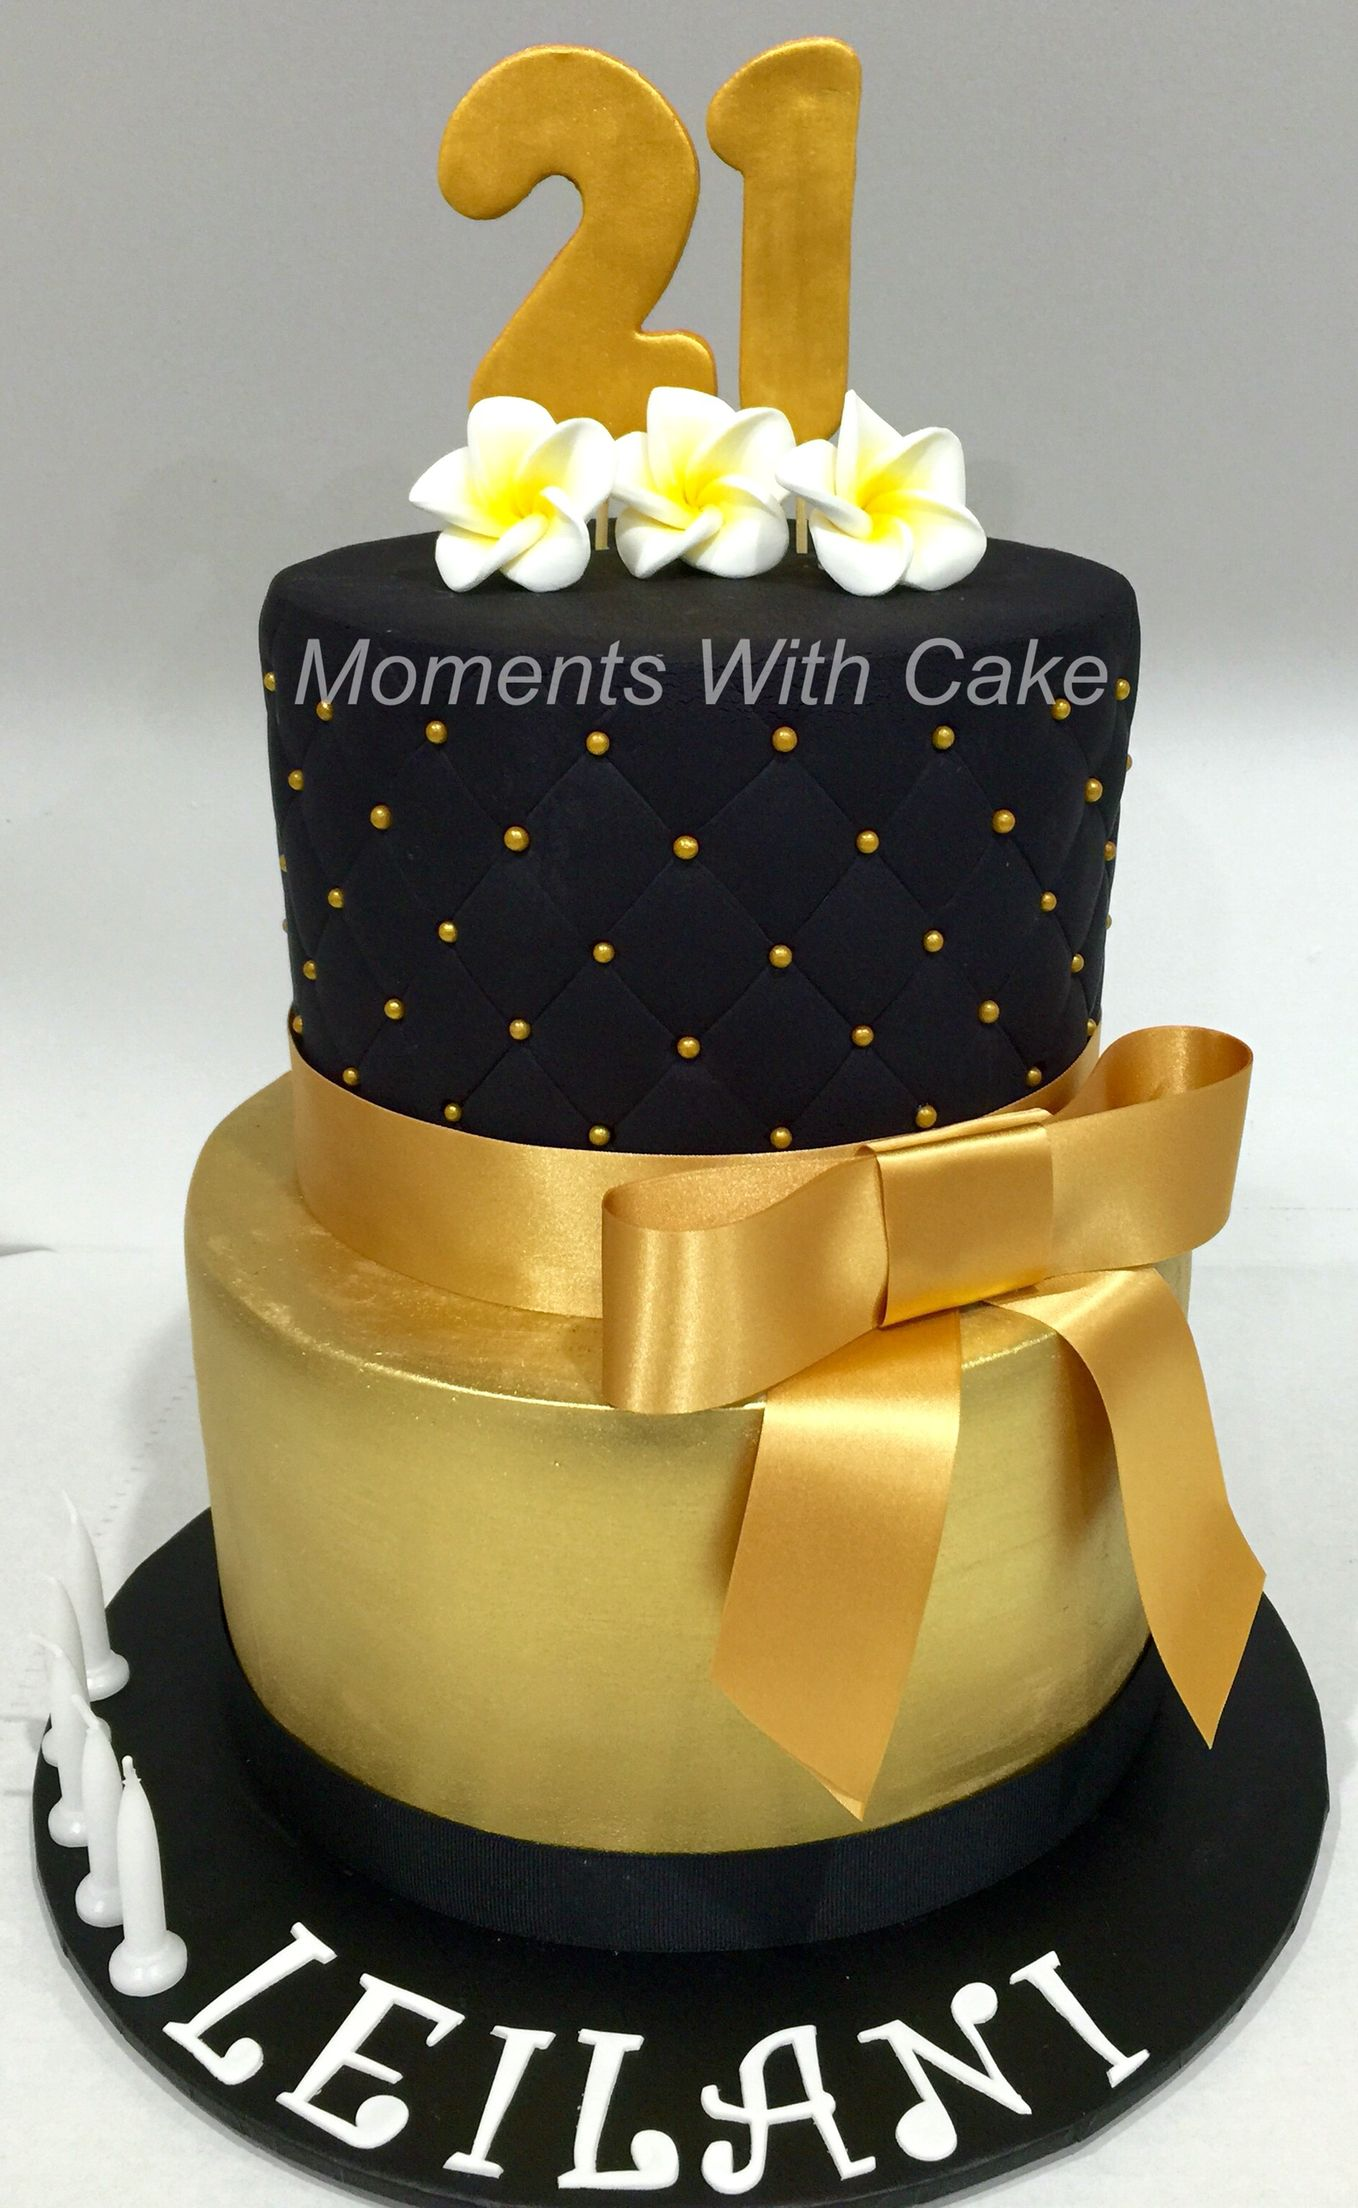 Gold And Black 2 Tier 21st Birthday Cake Momentswithcake Debut